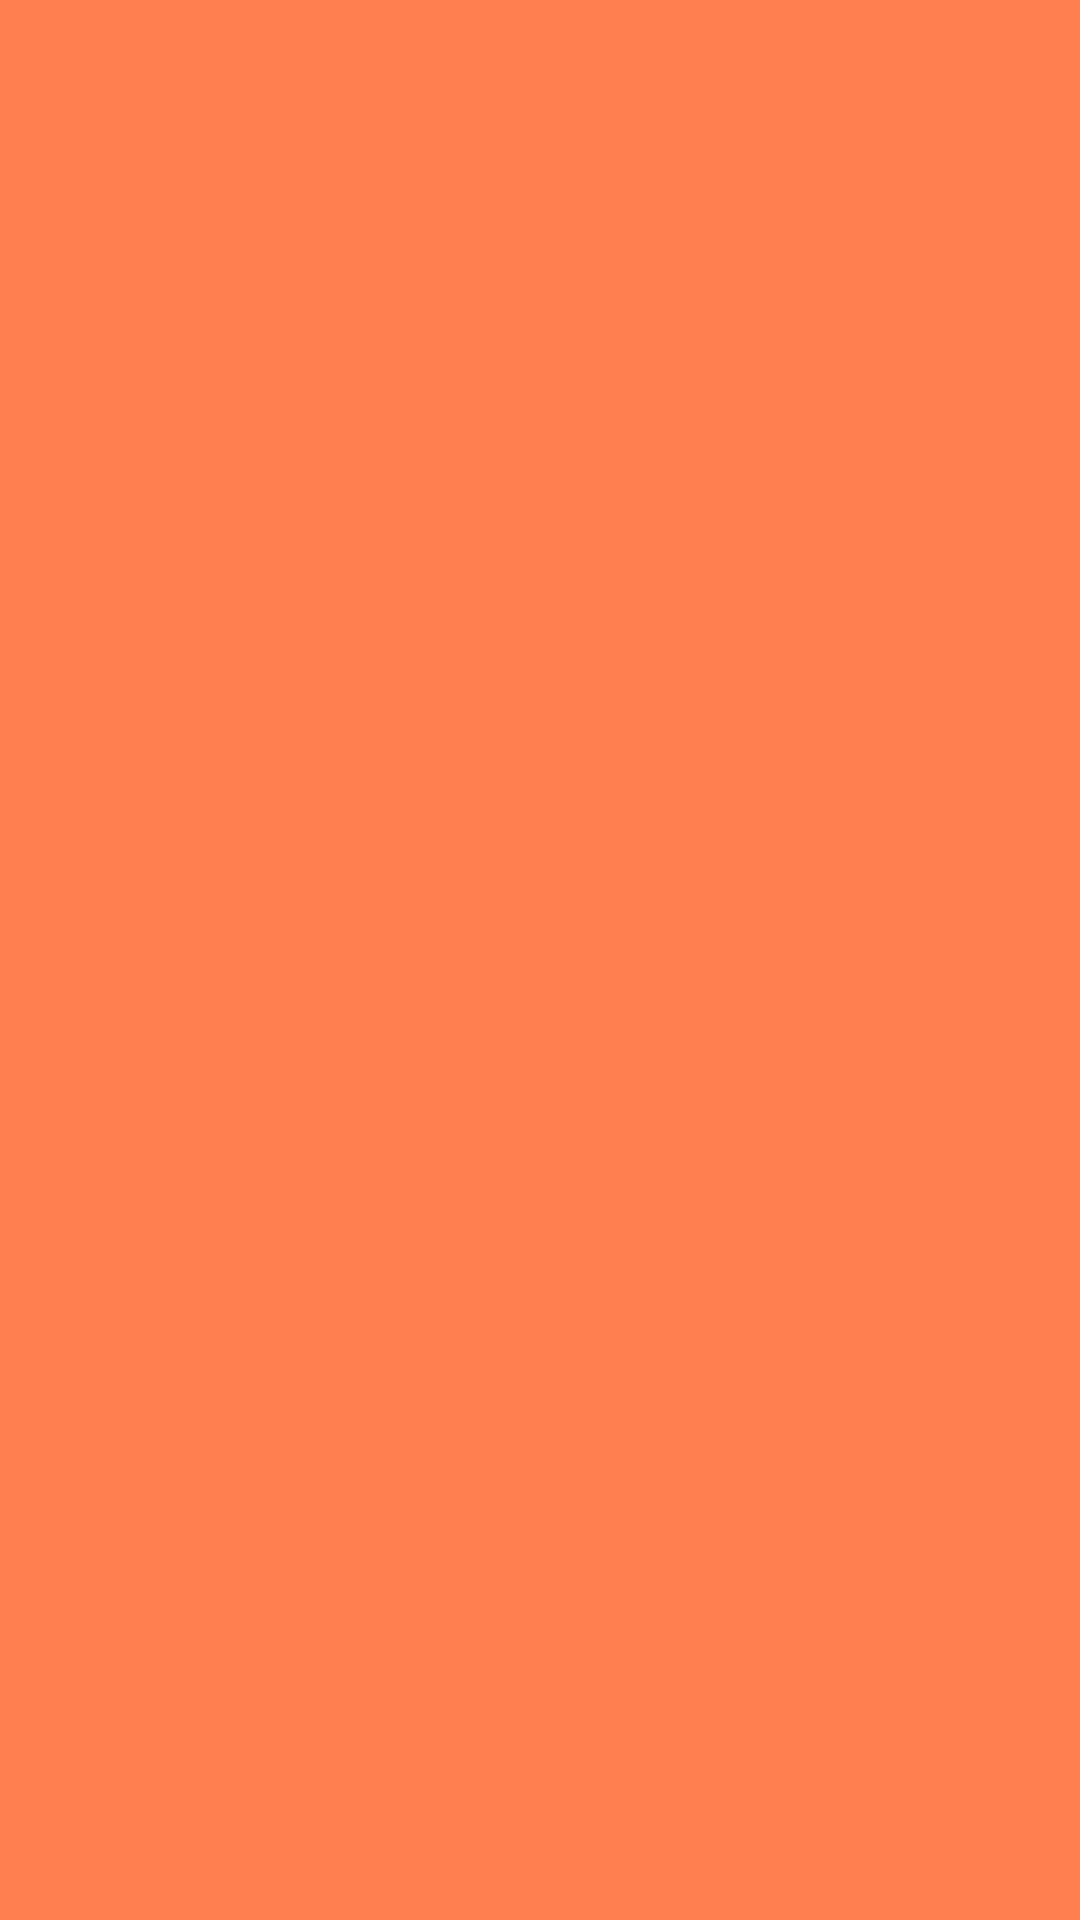 1080x1920 Coral Solid Color Background